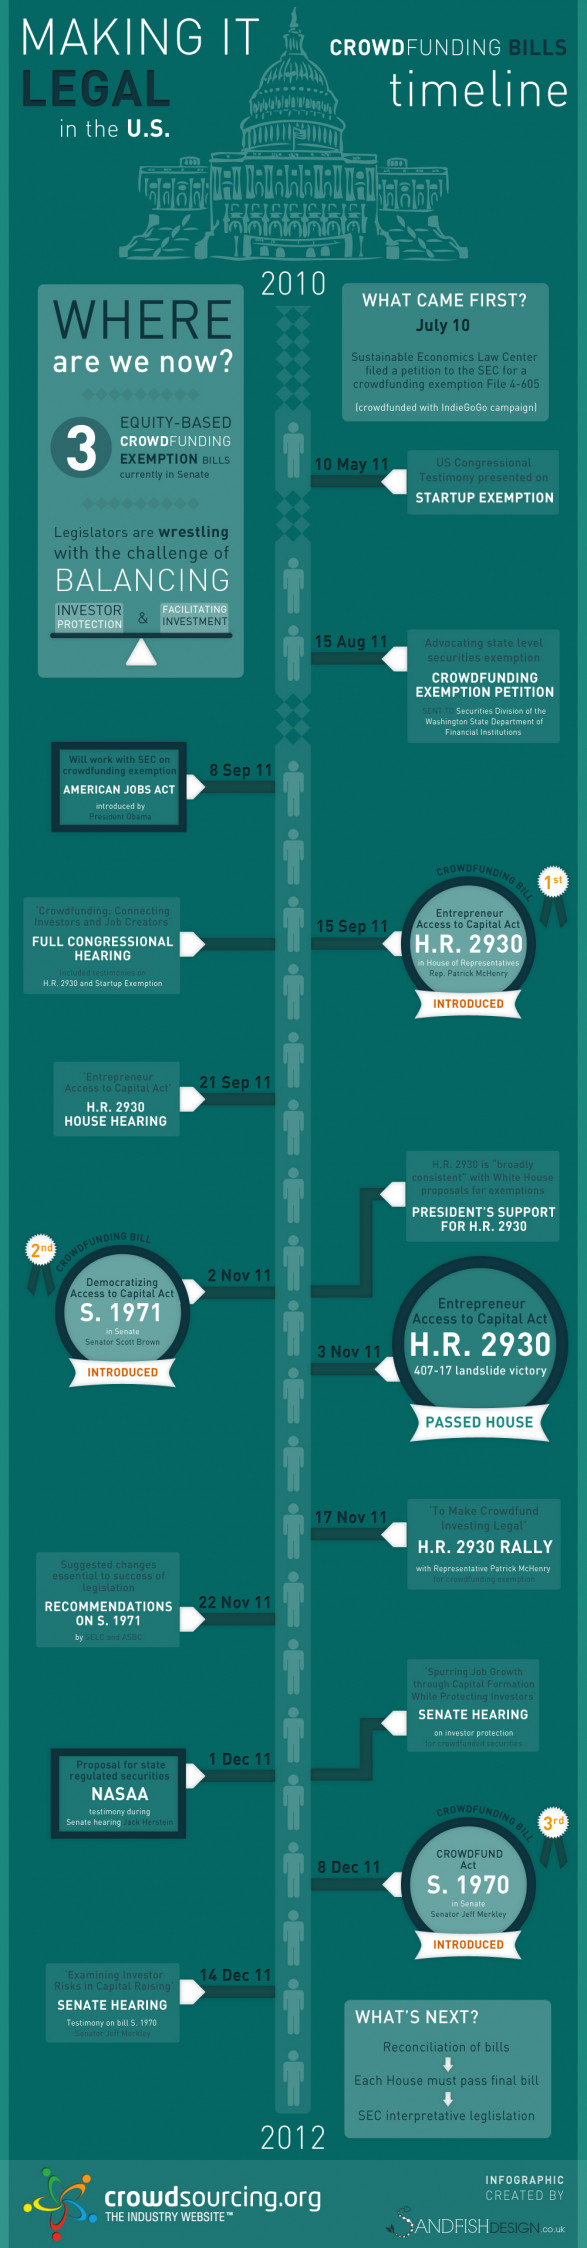 TIMELINE OF THE US CROWDFUNDING BILLS